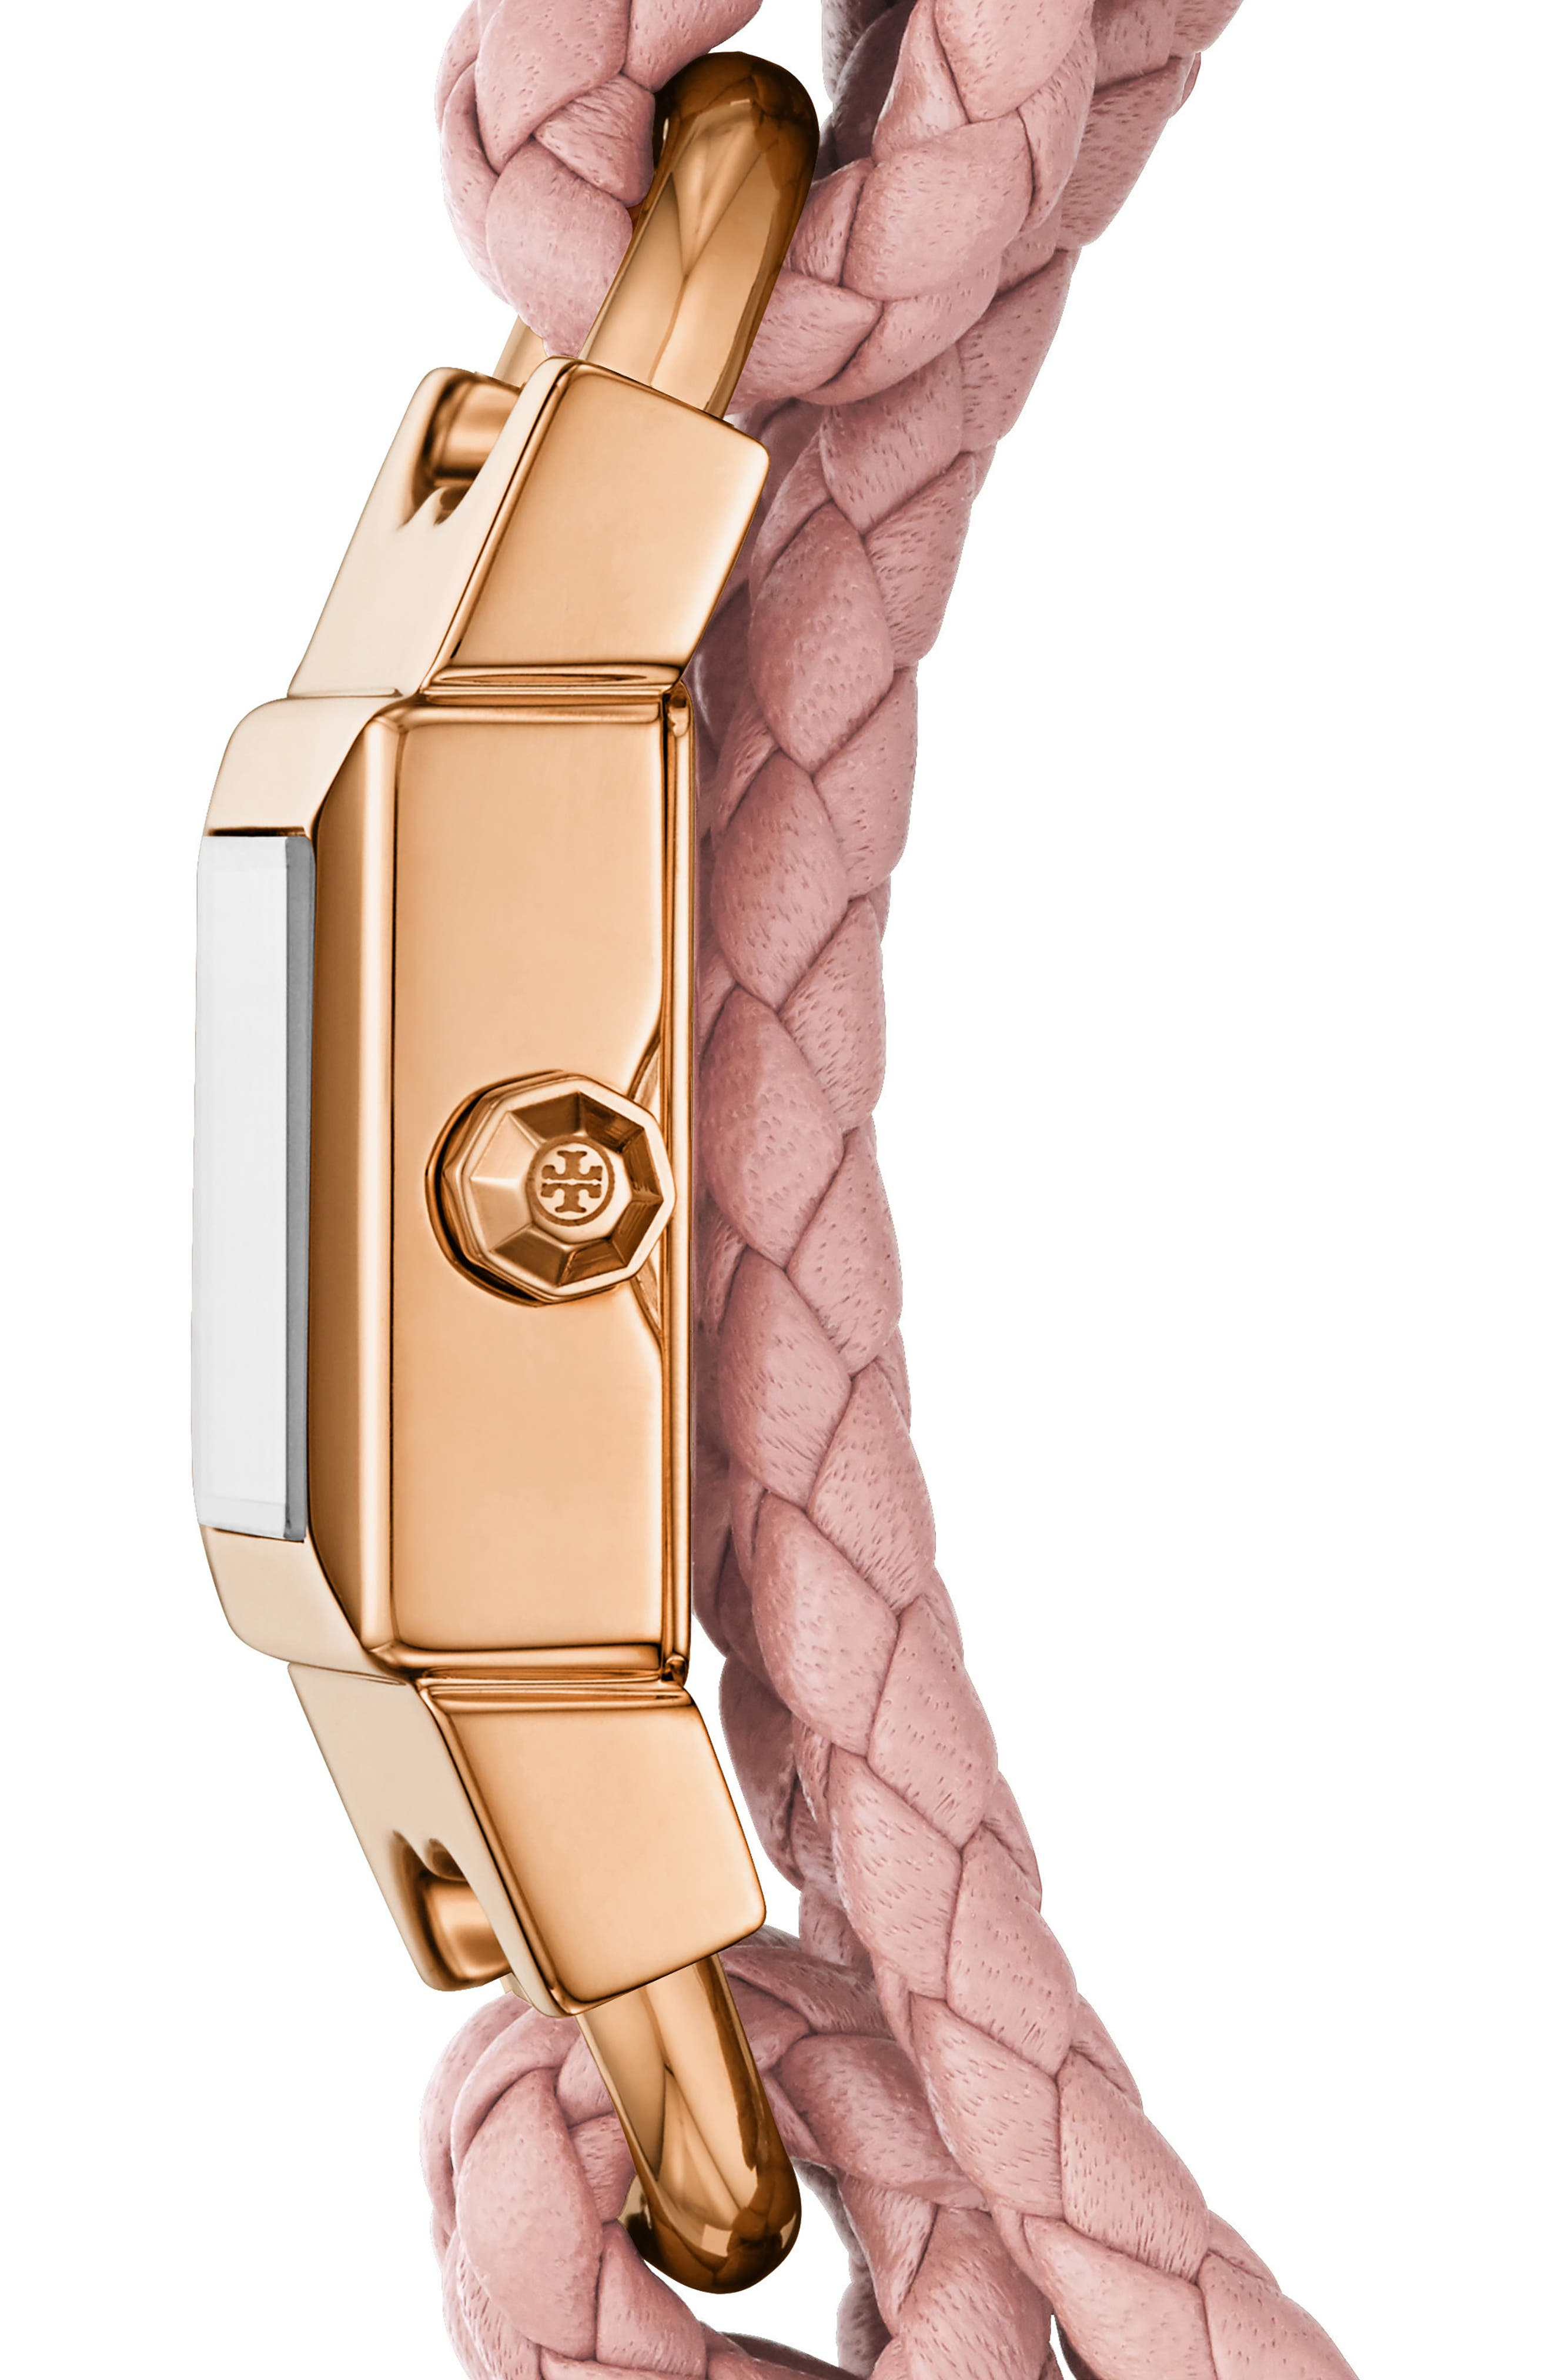 Gemini Link Square Leather Strap Watch, 18mm,                             Alternate thumbnail 2, color,                             PINK/ CREAM/ GOLD